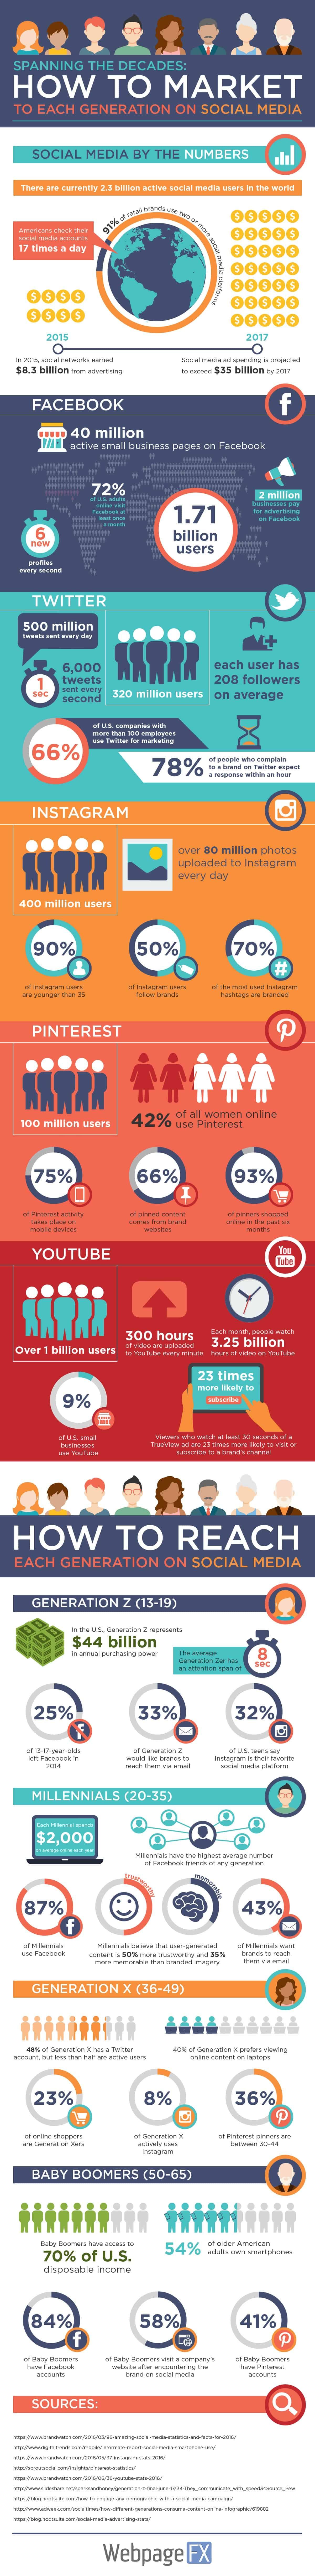 196e9f82b1 And how to get them on board. social-media-generation-infographic